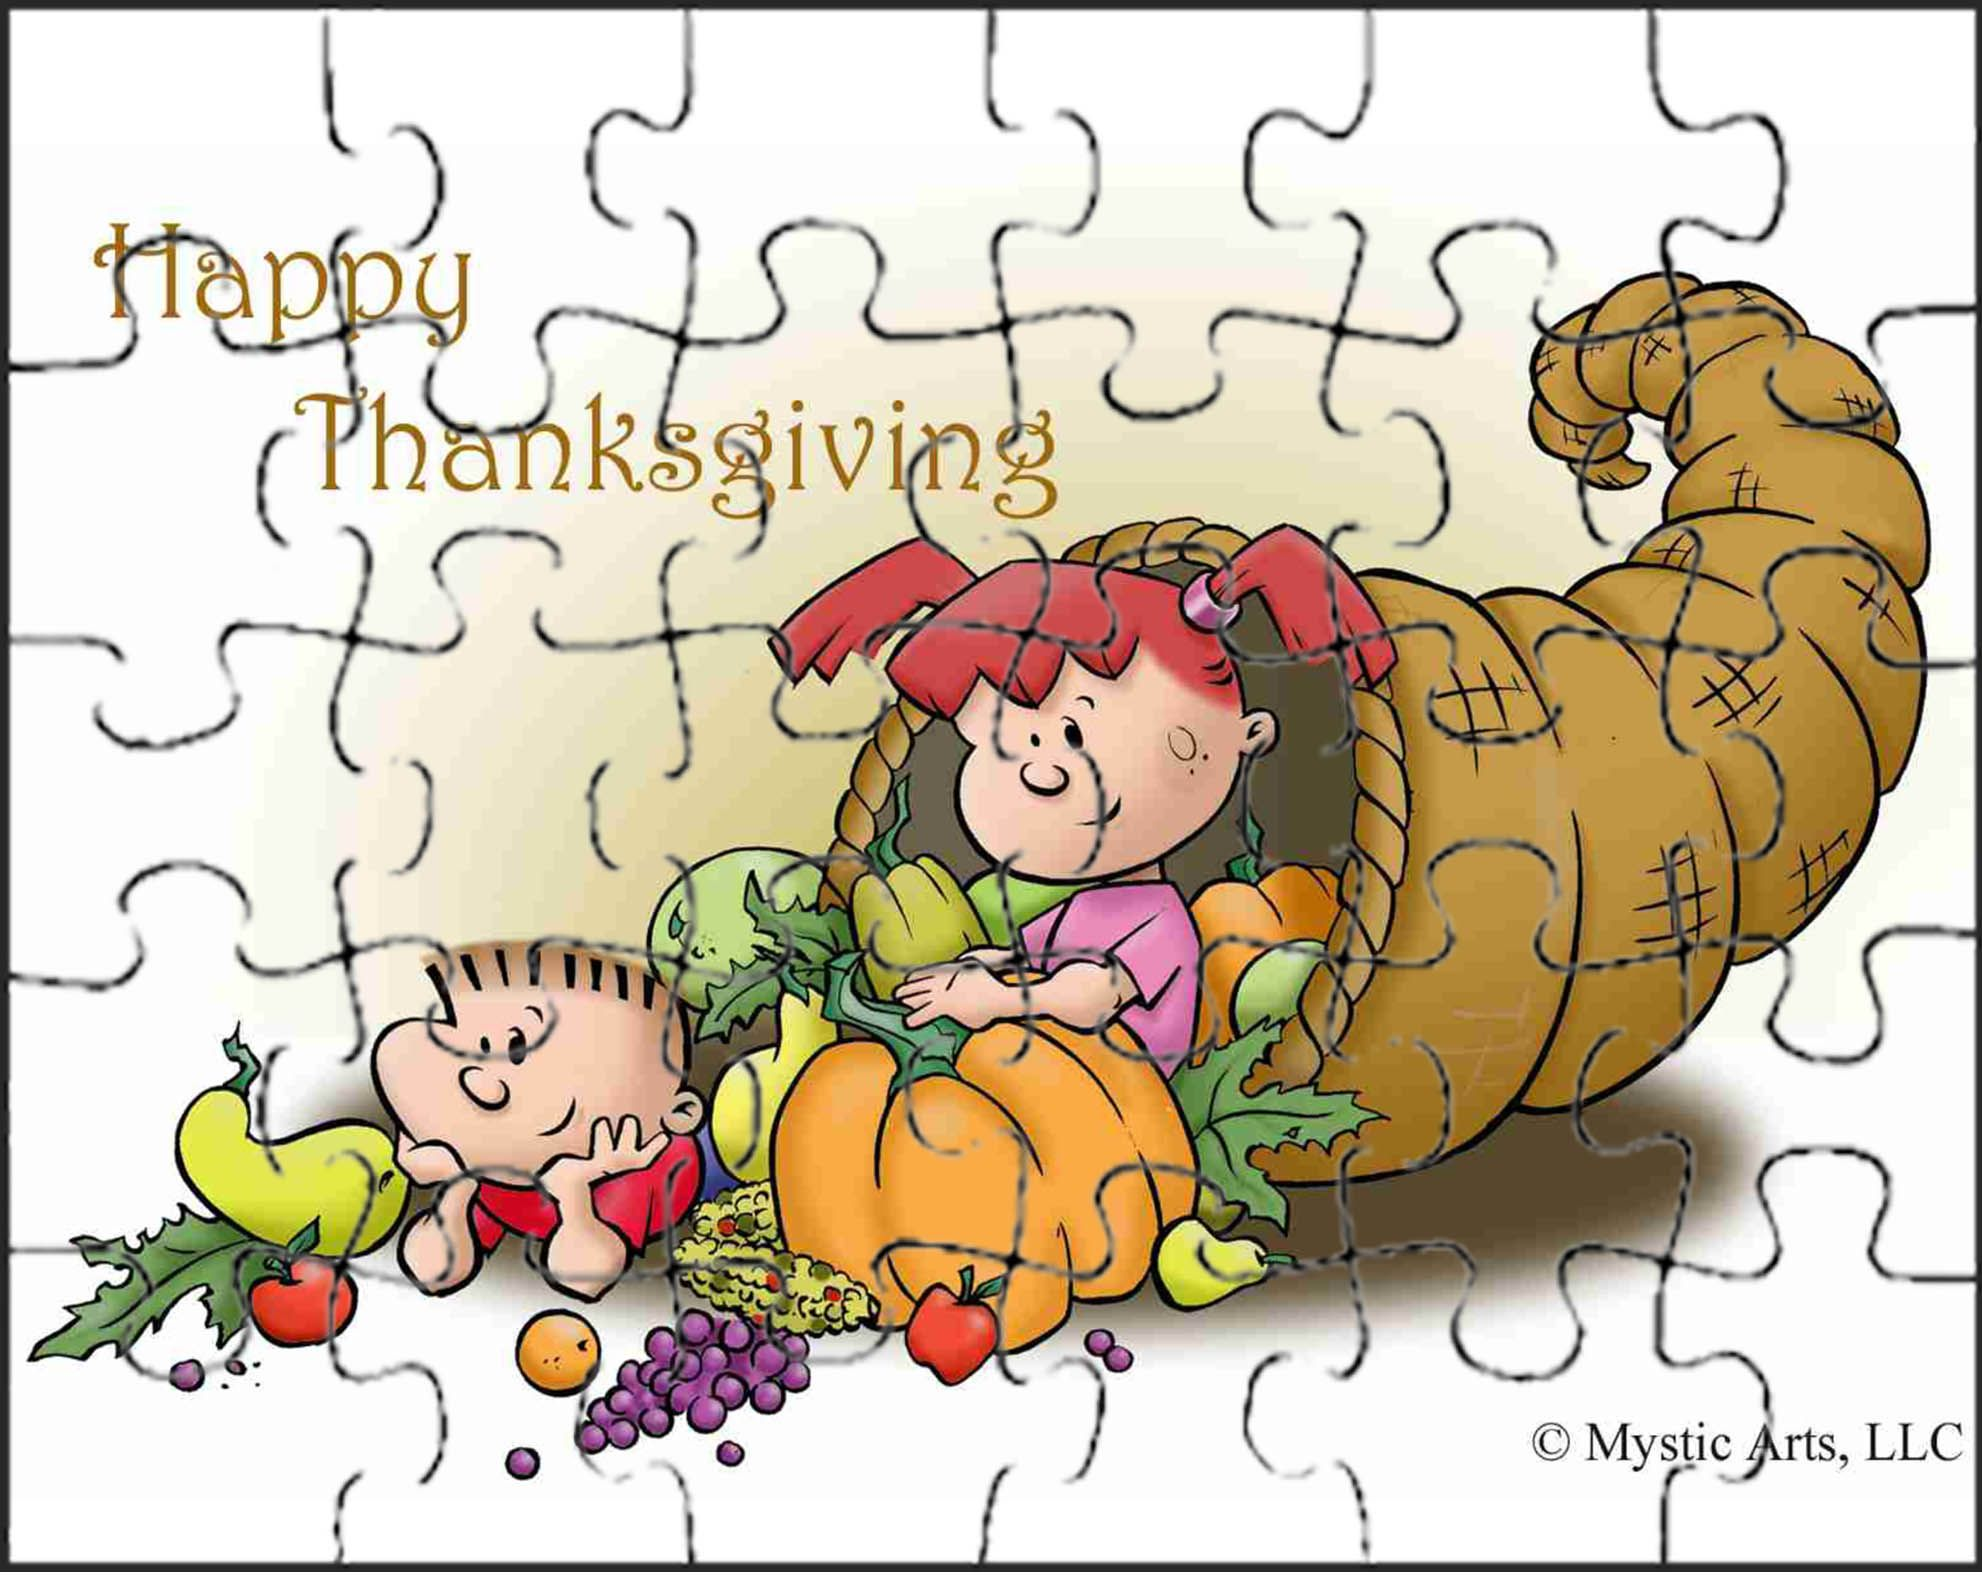 Thanksgiving Cornucopia Puzzle And Other Fun Activities